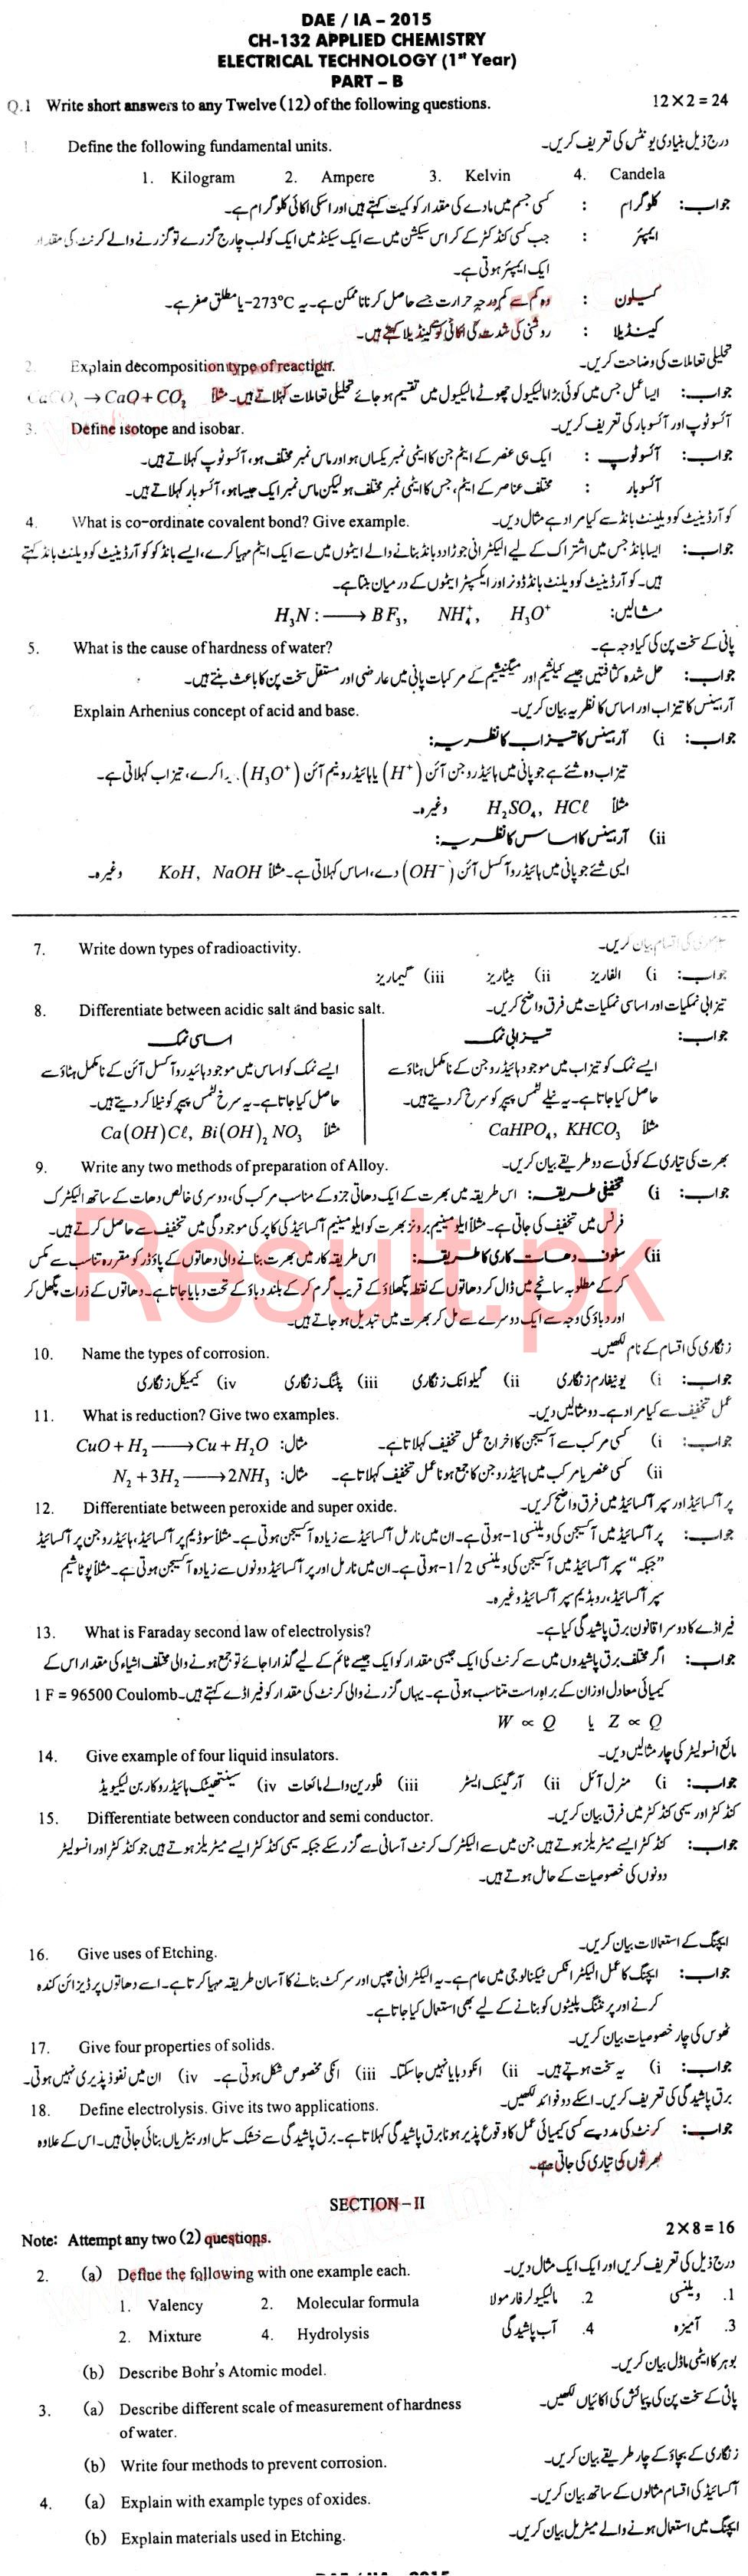 Punjab Board of Technical Education Lahore Past Papers 2018